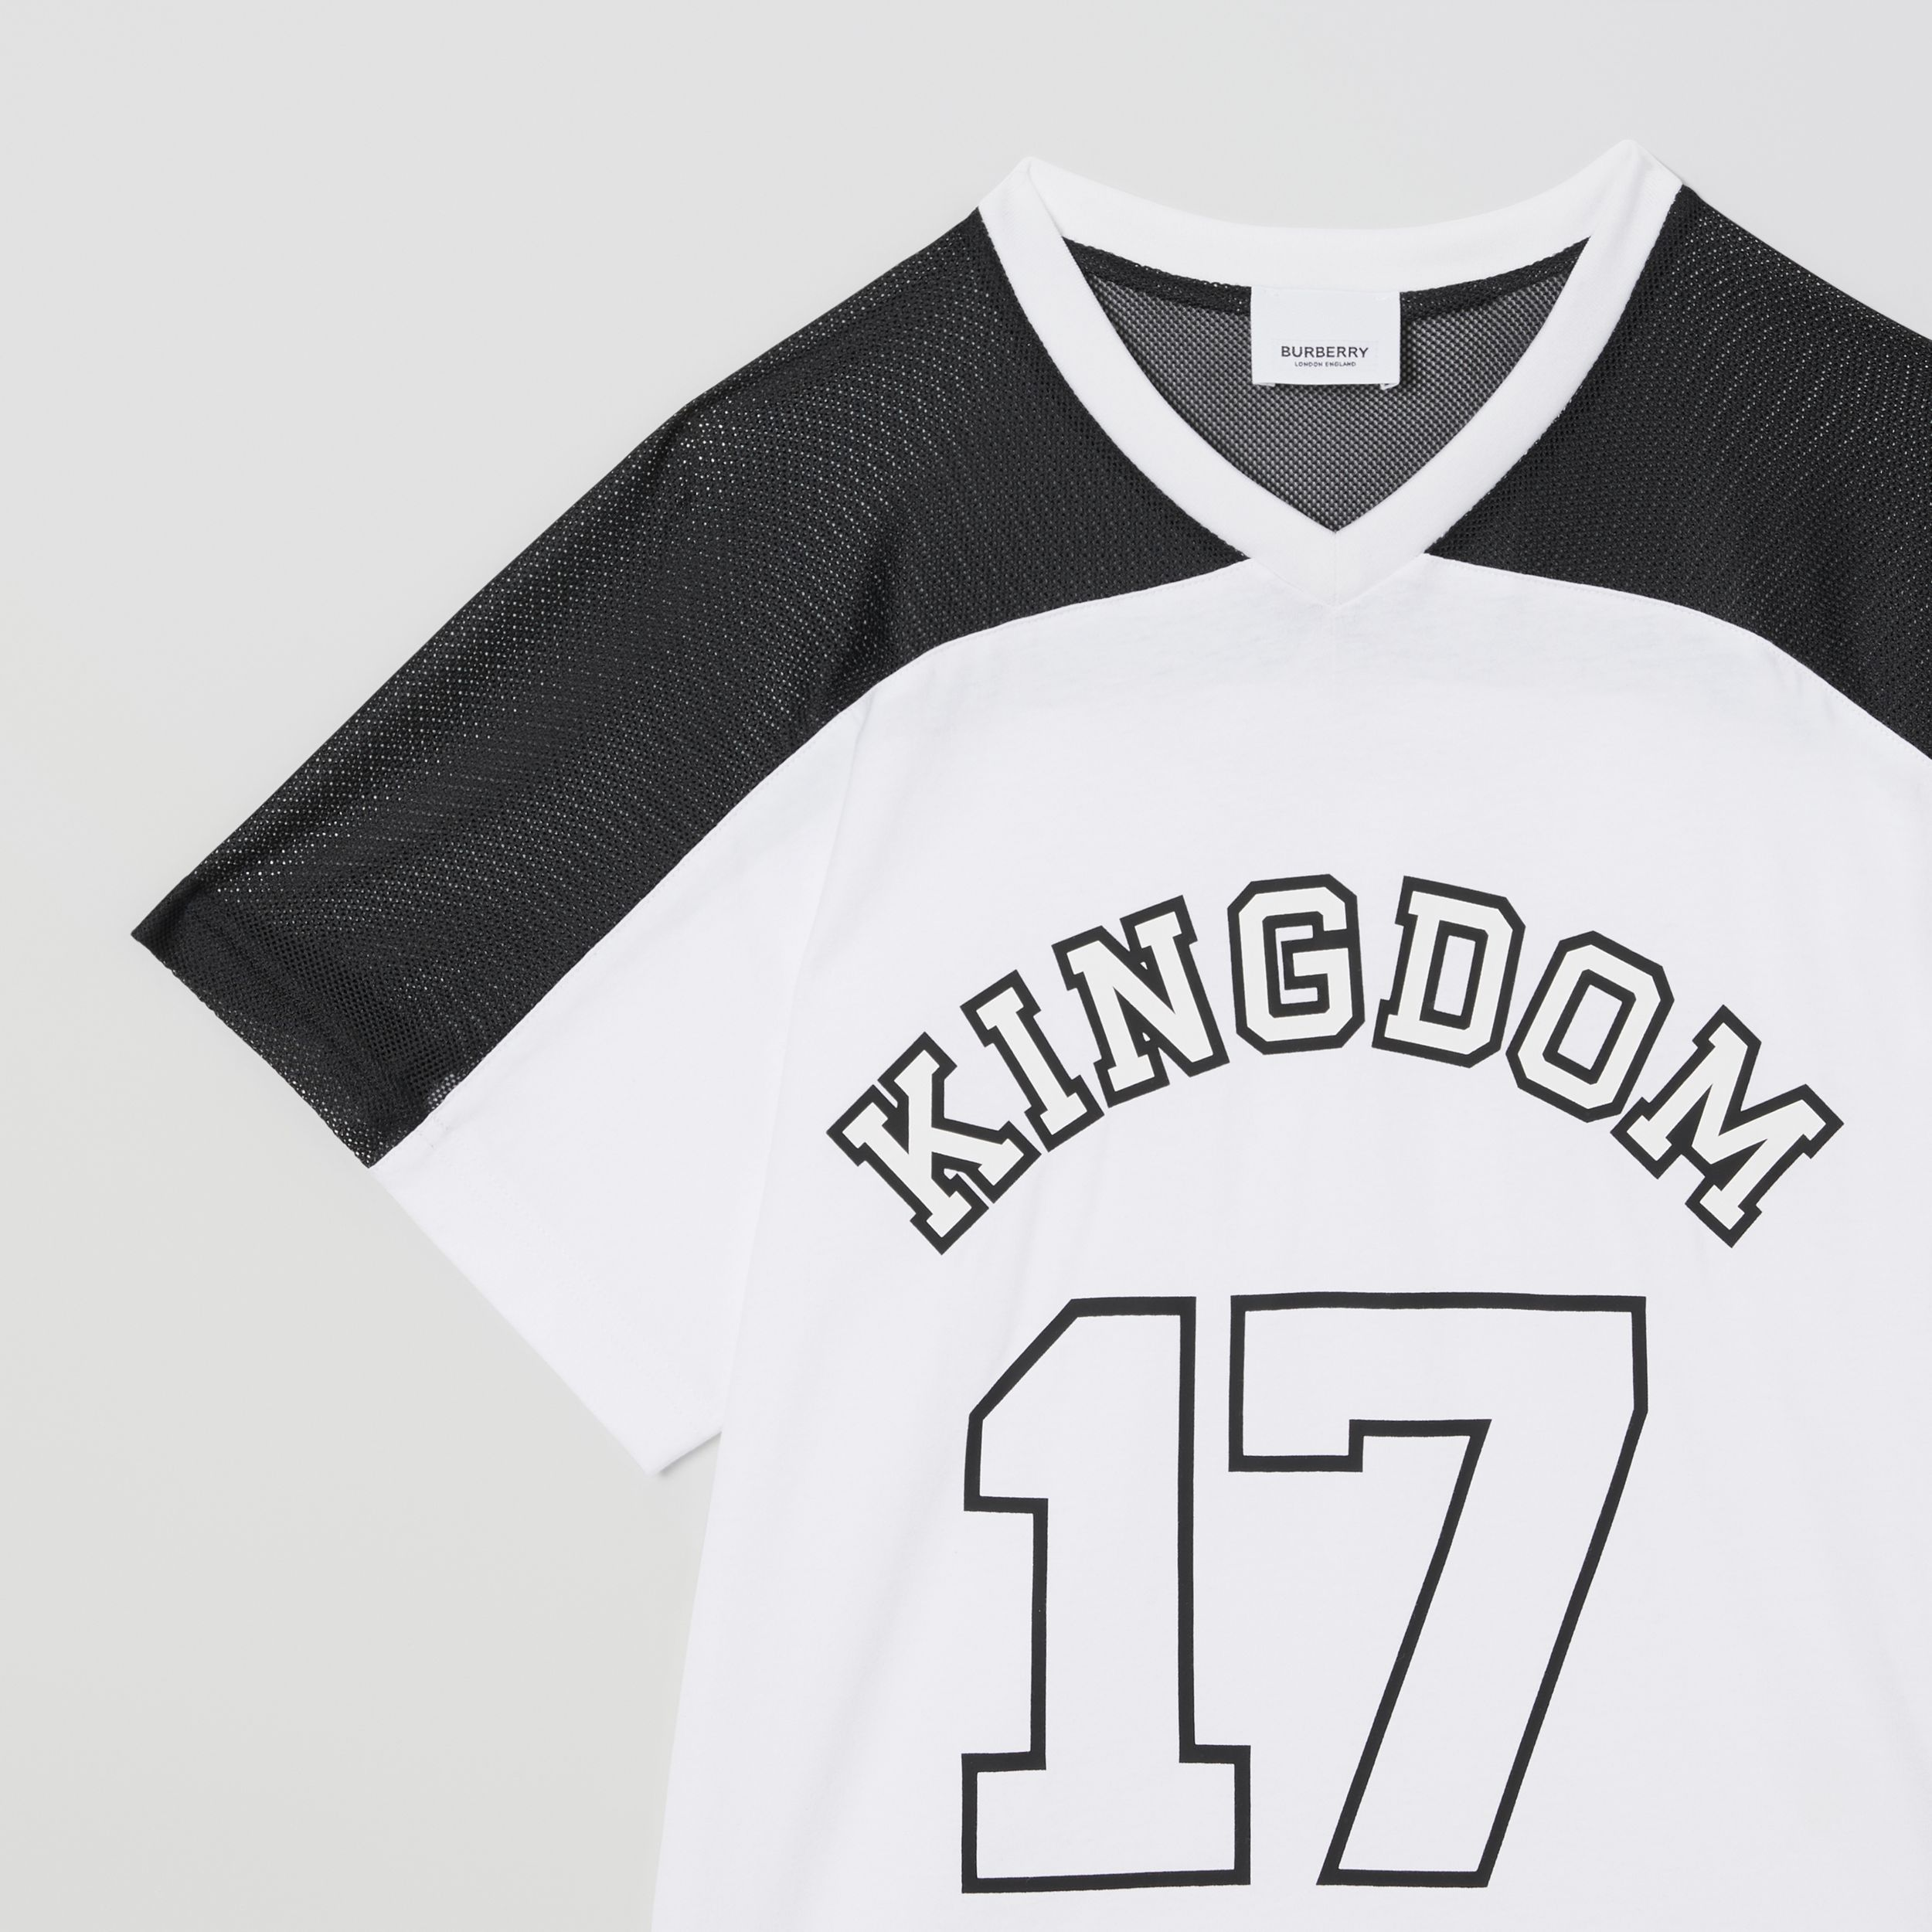 Mesh Panel Kingdom Print Cotton T-shirt in Black | Burberry - 2